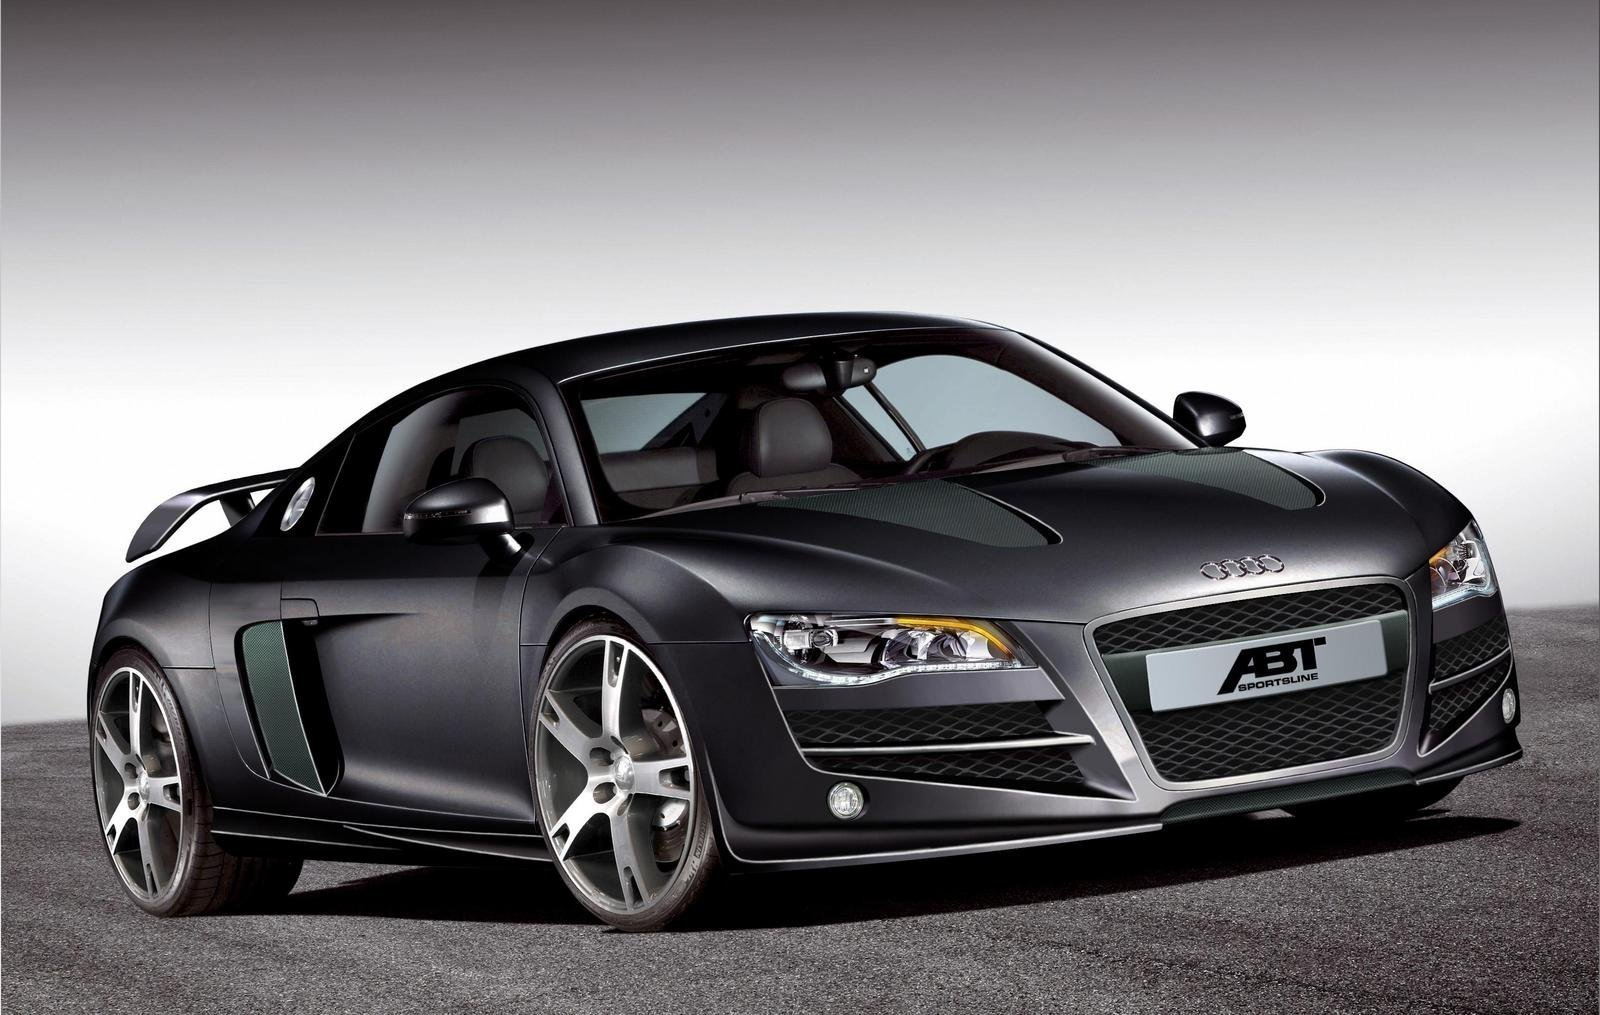 Latest 2008 Abt Audi R8 Cars Pictures Autocars Wallpapers Free Download